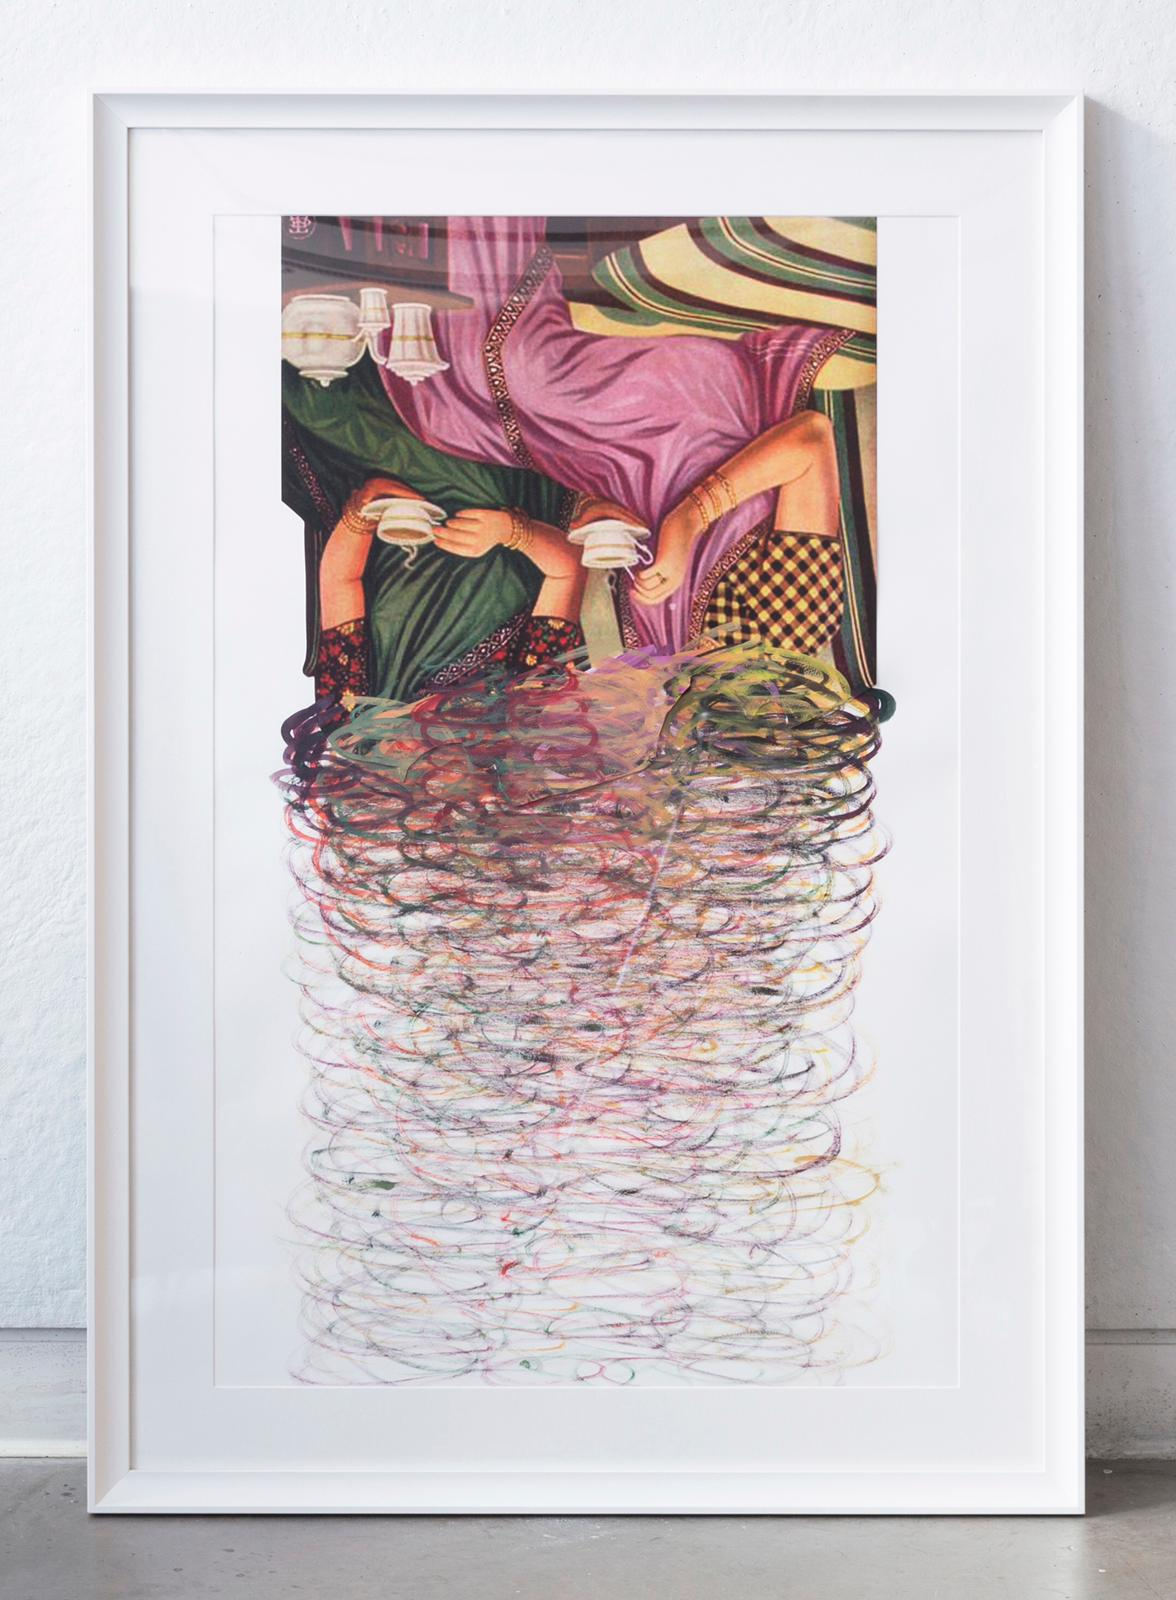 photograph of an upside down painting of two women sitting and having tea